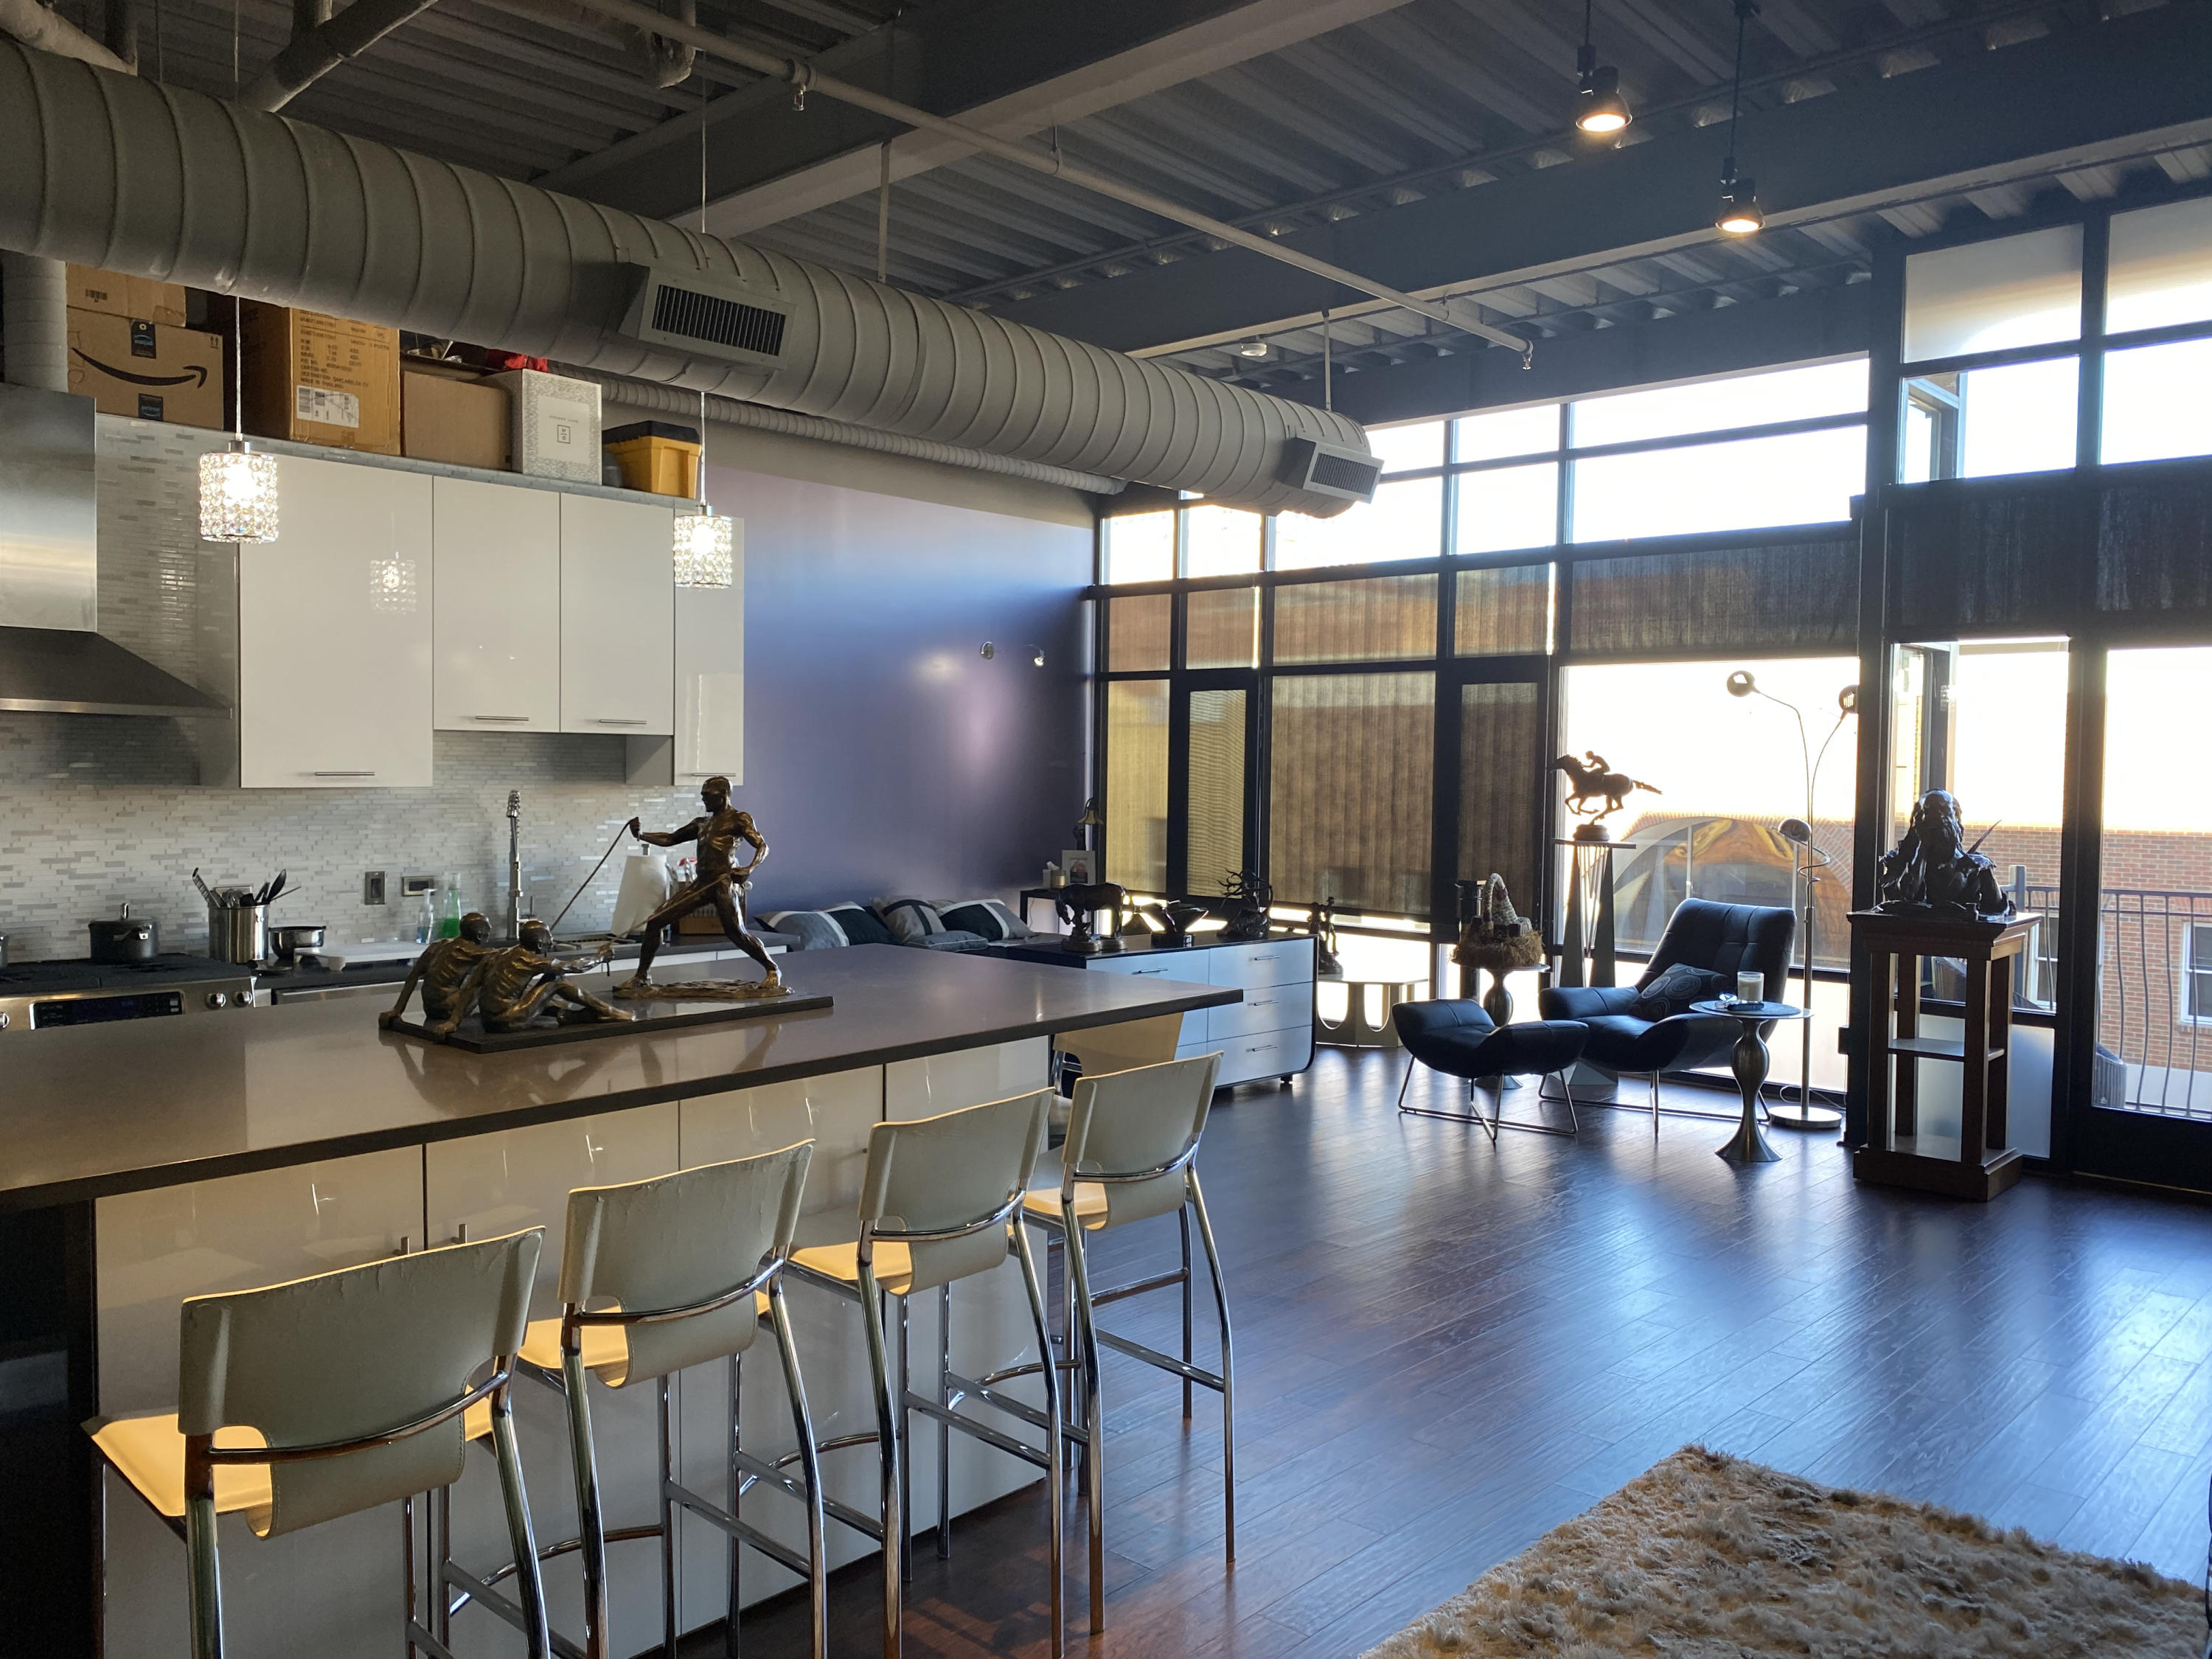 Spacious oversized studio maximizing the 1,112 SF space for entertaining and urban living in this perfectly located glass and steel building.  This loft features a new designer kitchen with an island that can be used as a high-top dining table for up to ten people. The island has additional cabinet space on both sides.  Brand new floors throughout.  Deluxe custom organizers line three walls of the bright closet, where space is maximized with adjustable telescoping rods and expanding shelves so you can easily customize to your personal shelving and hanging needs. Upgraded LED lighting throughout. Full bathroom with Kohler tub and double sinks, as well as washer/dryer. Floor-to-ceiling windows. Nice balcony approximately 55 SF with exposed brick on one side provides great views.